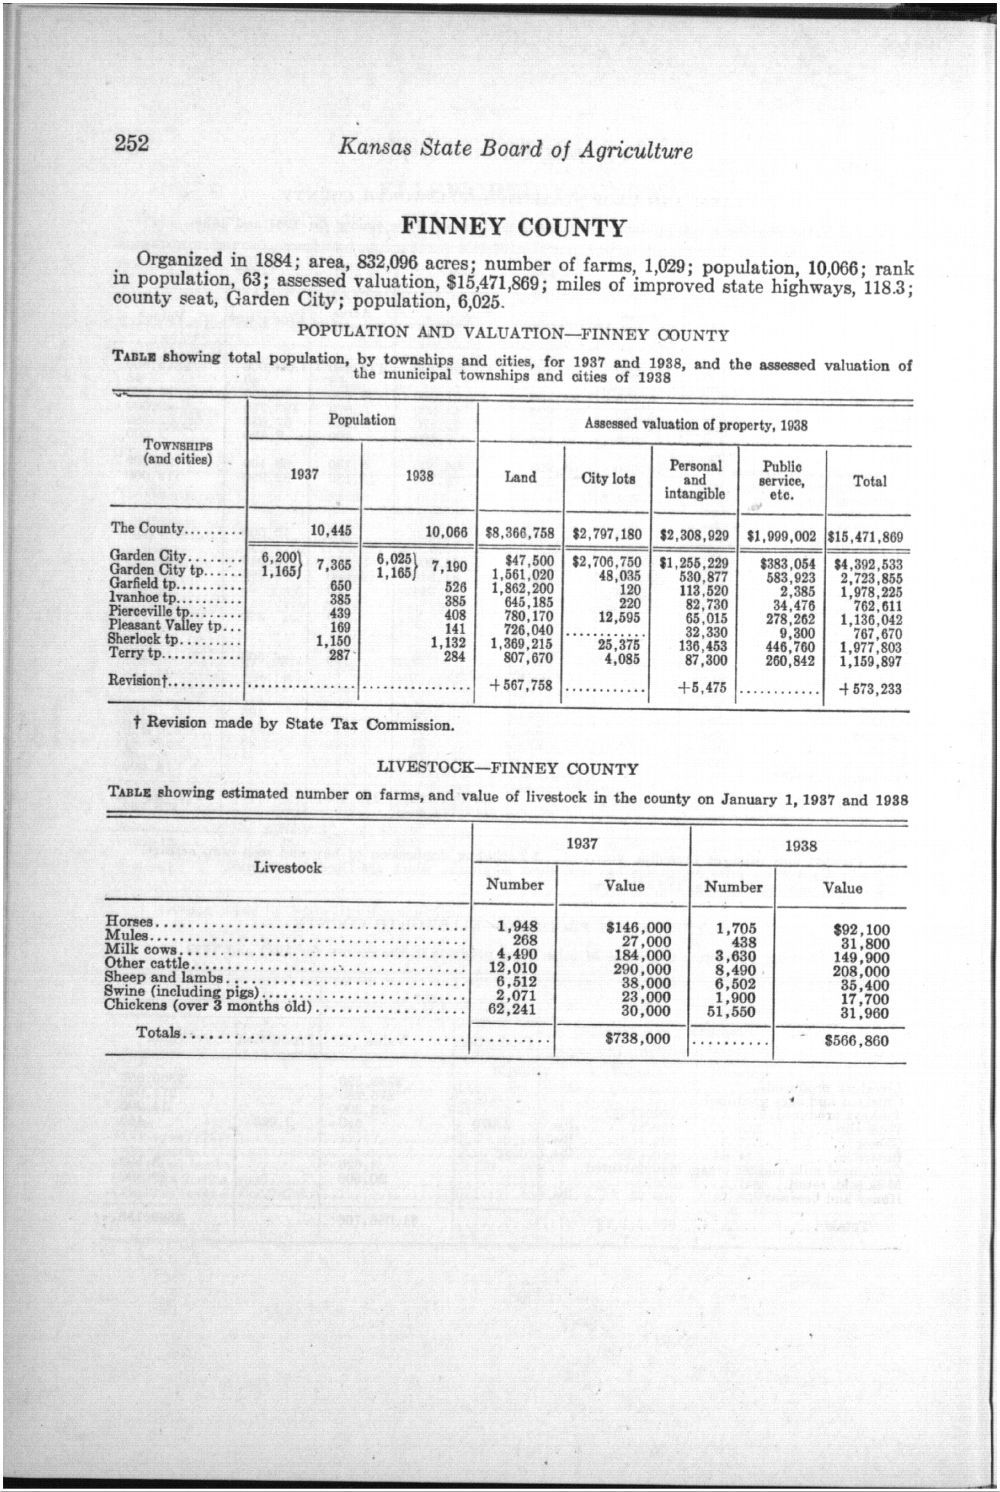 Thirty-first Biennial Report, Statistics by county showing population, acreage, production, and livestock, 1937-1938 - 252